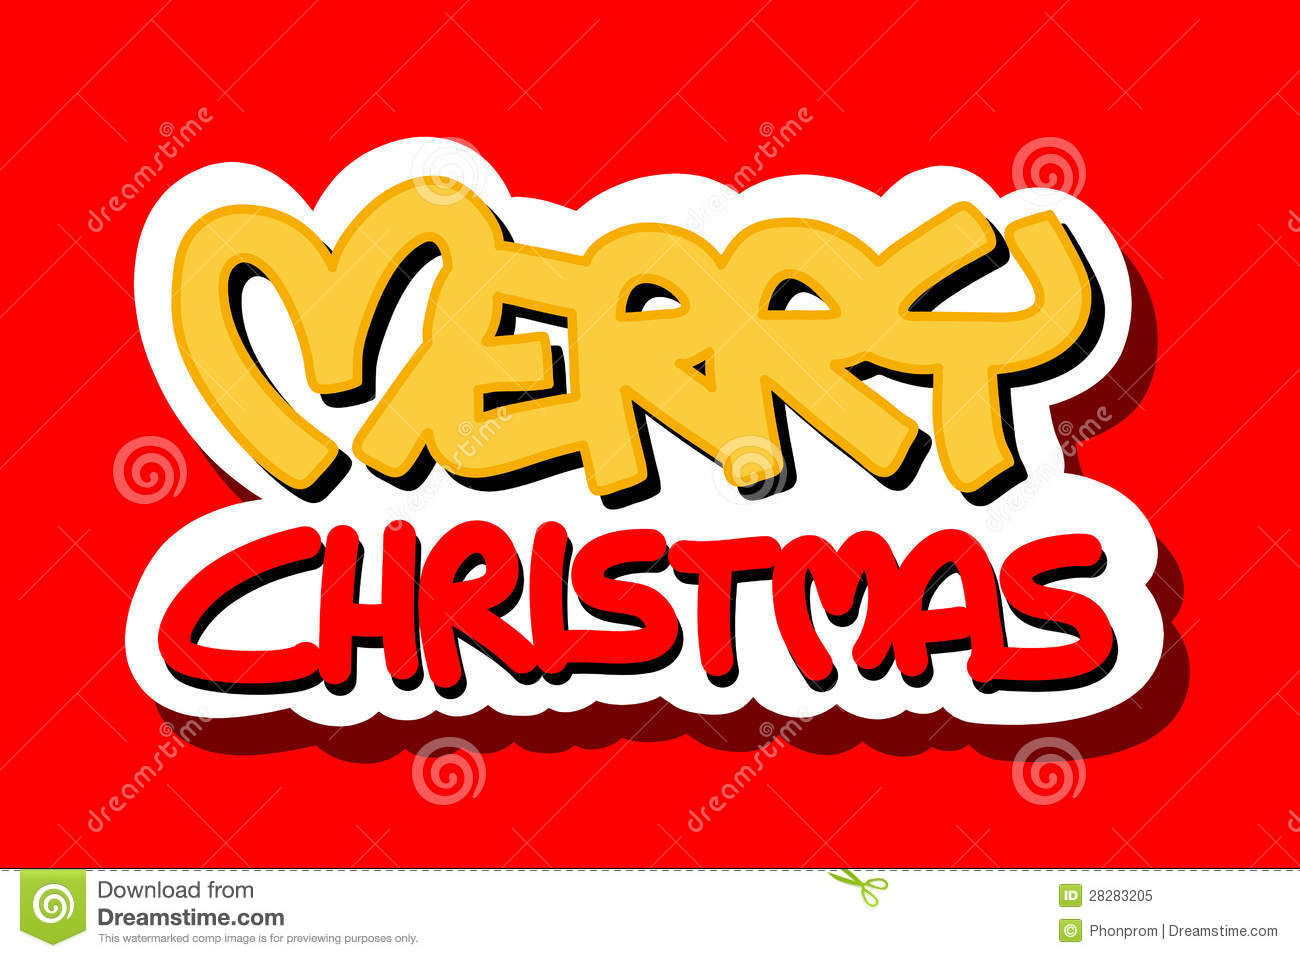 Merry Christmas logo on red background